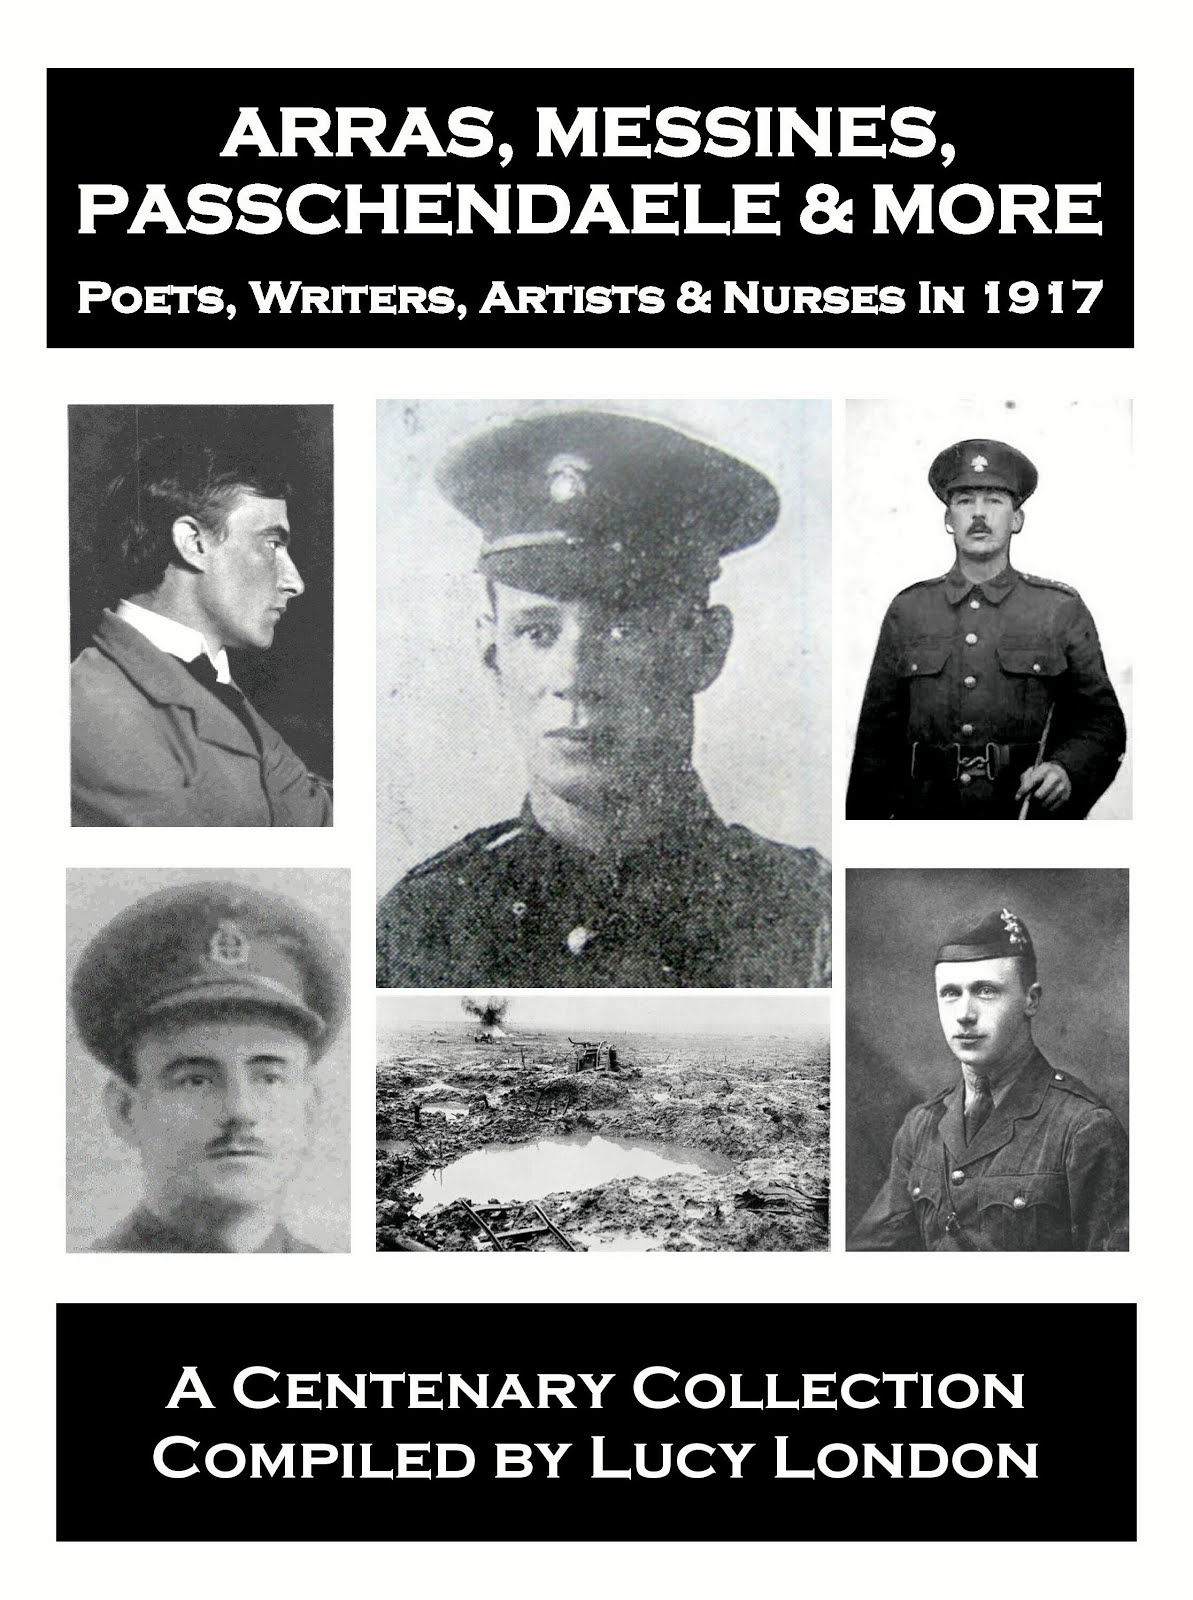 Arras, Messines, Passchendaele & More - 1917 book now available